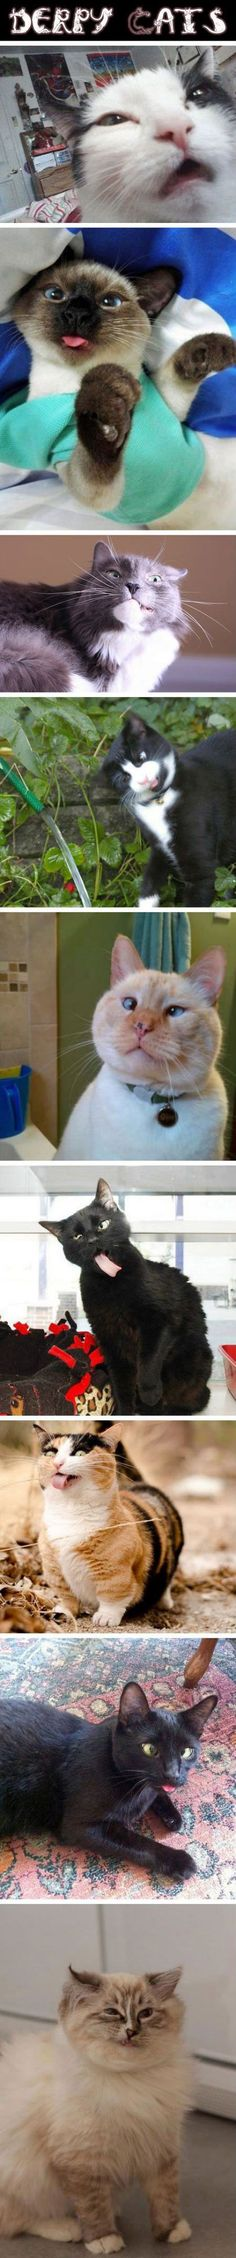 Love my cousin's cat! Lol it's the first one! Totally viral derpy cat!